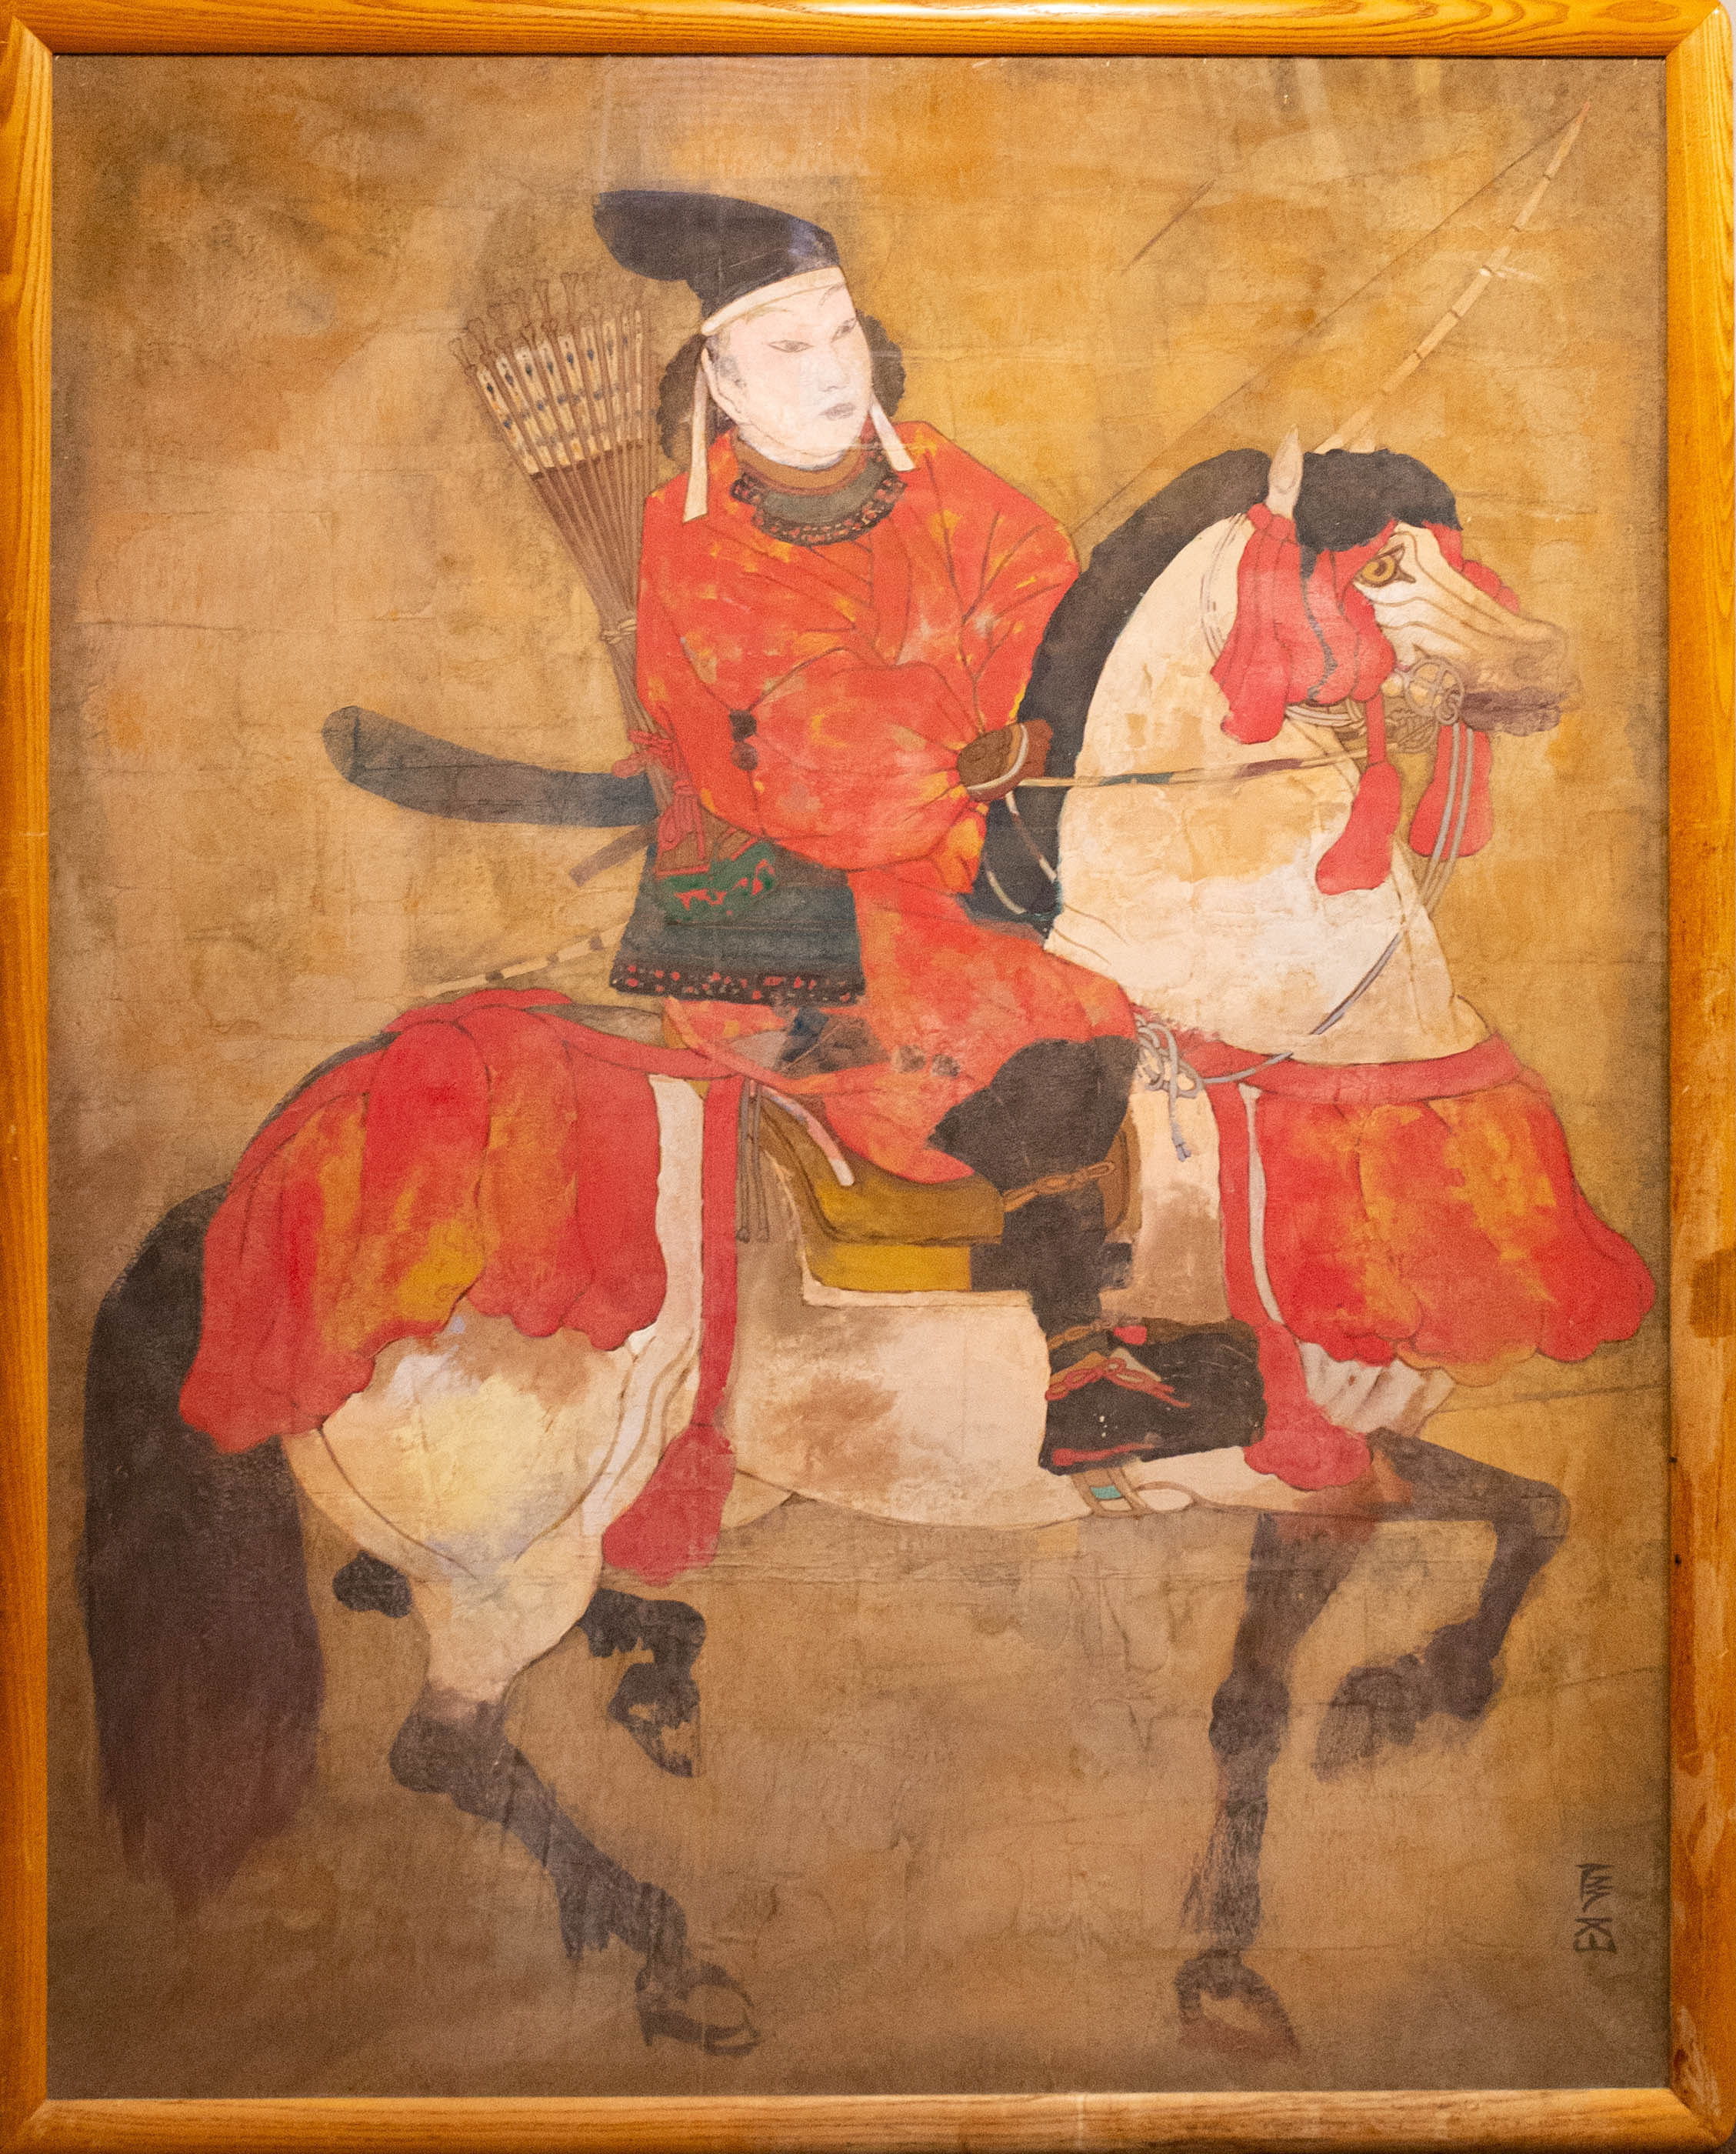 Painting of a Nobleman Warrior